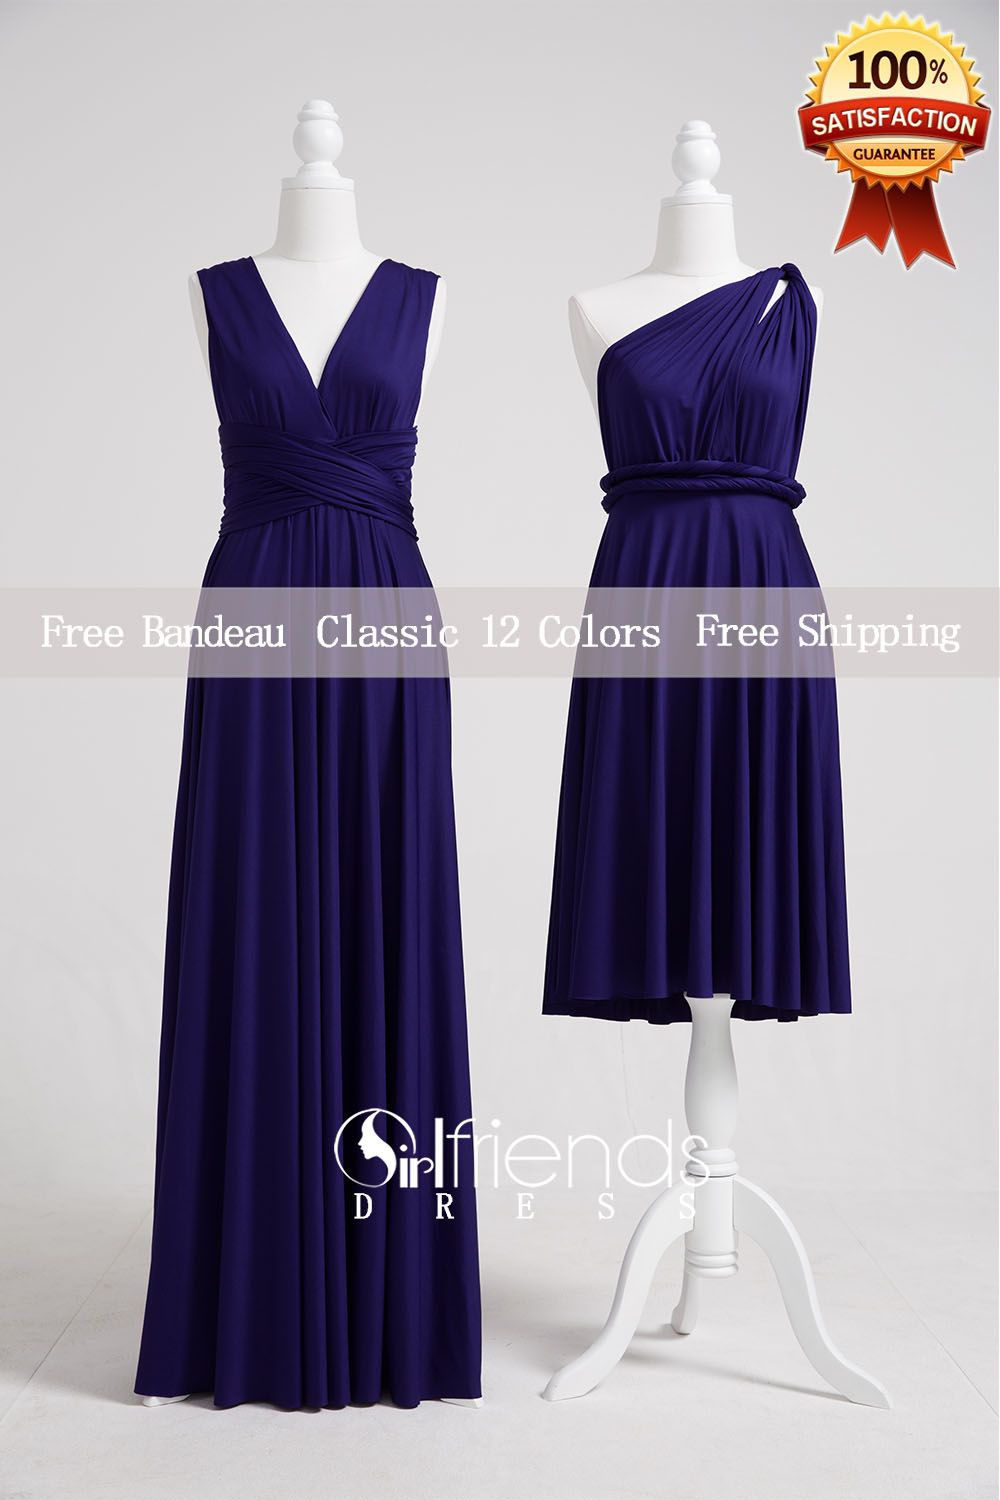 Midnight blue bridesmaid dressconvertible dressesinfinity dresses